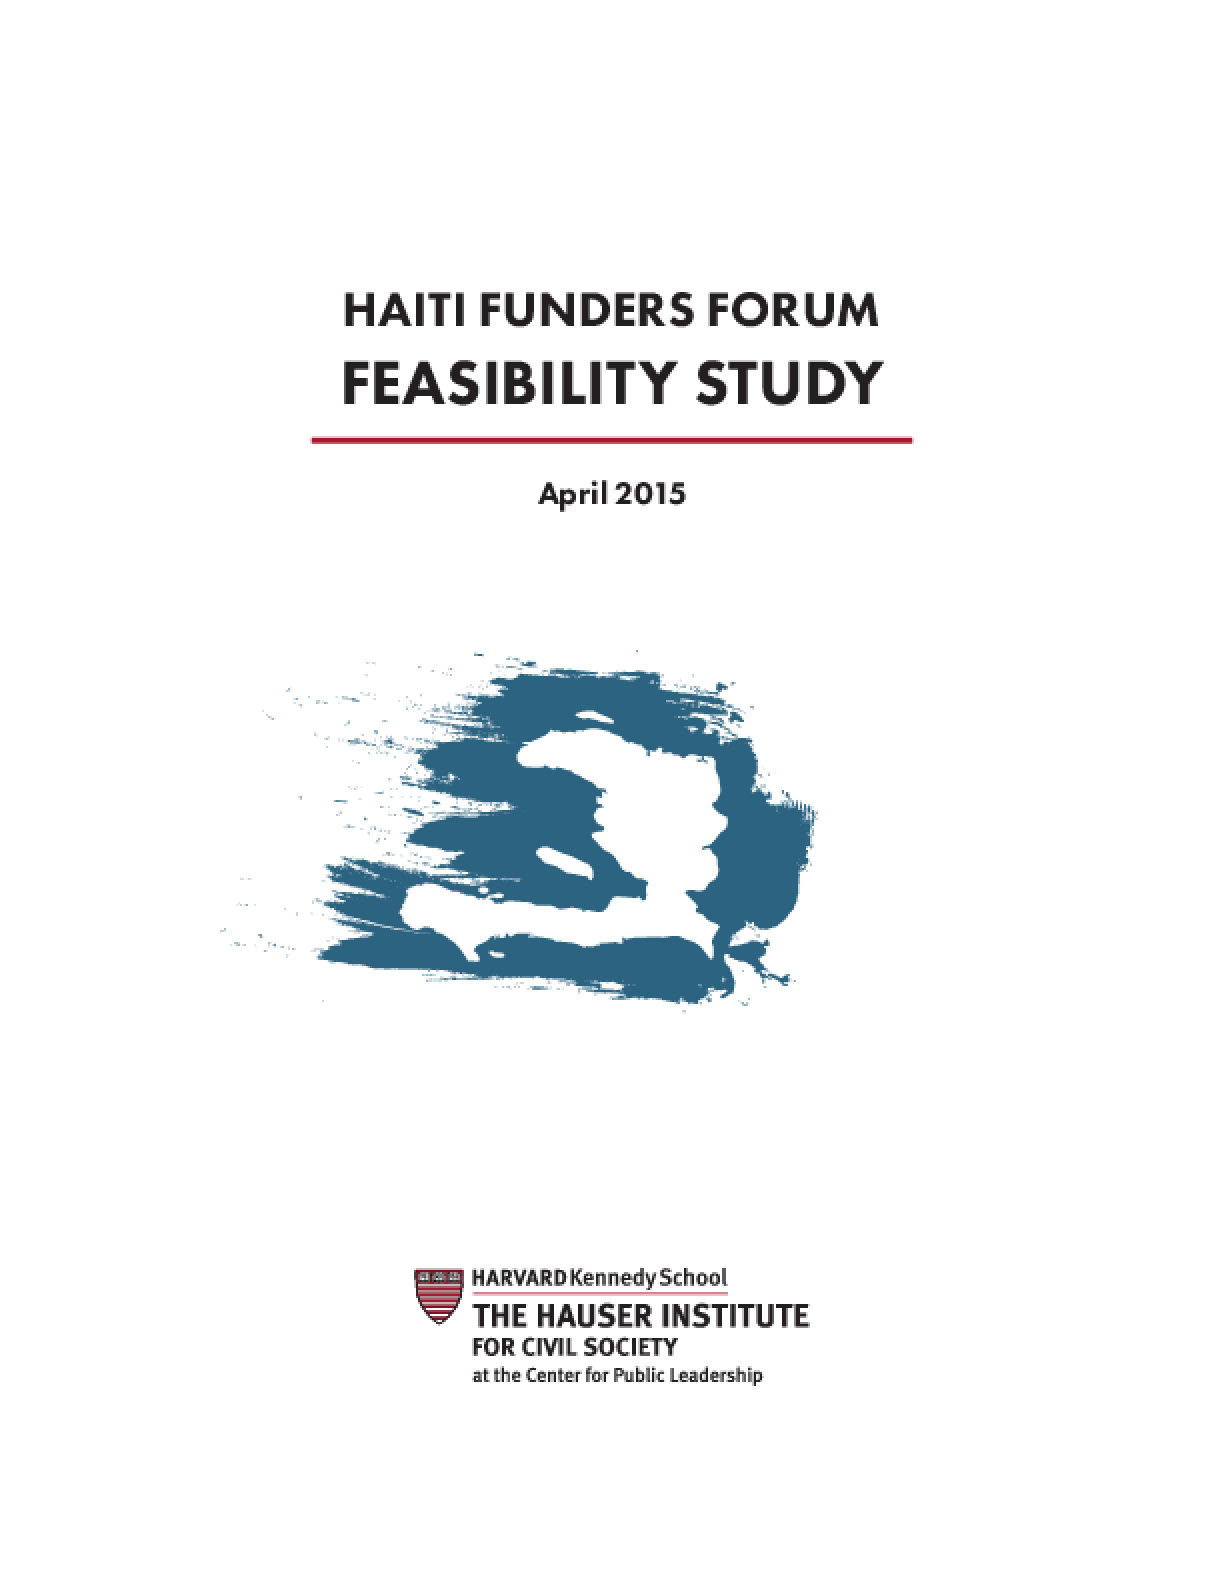 Haiti Funders Forum Feasibility Study